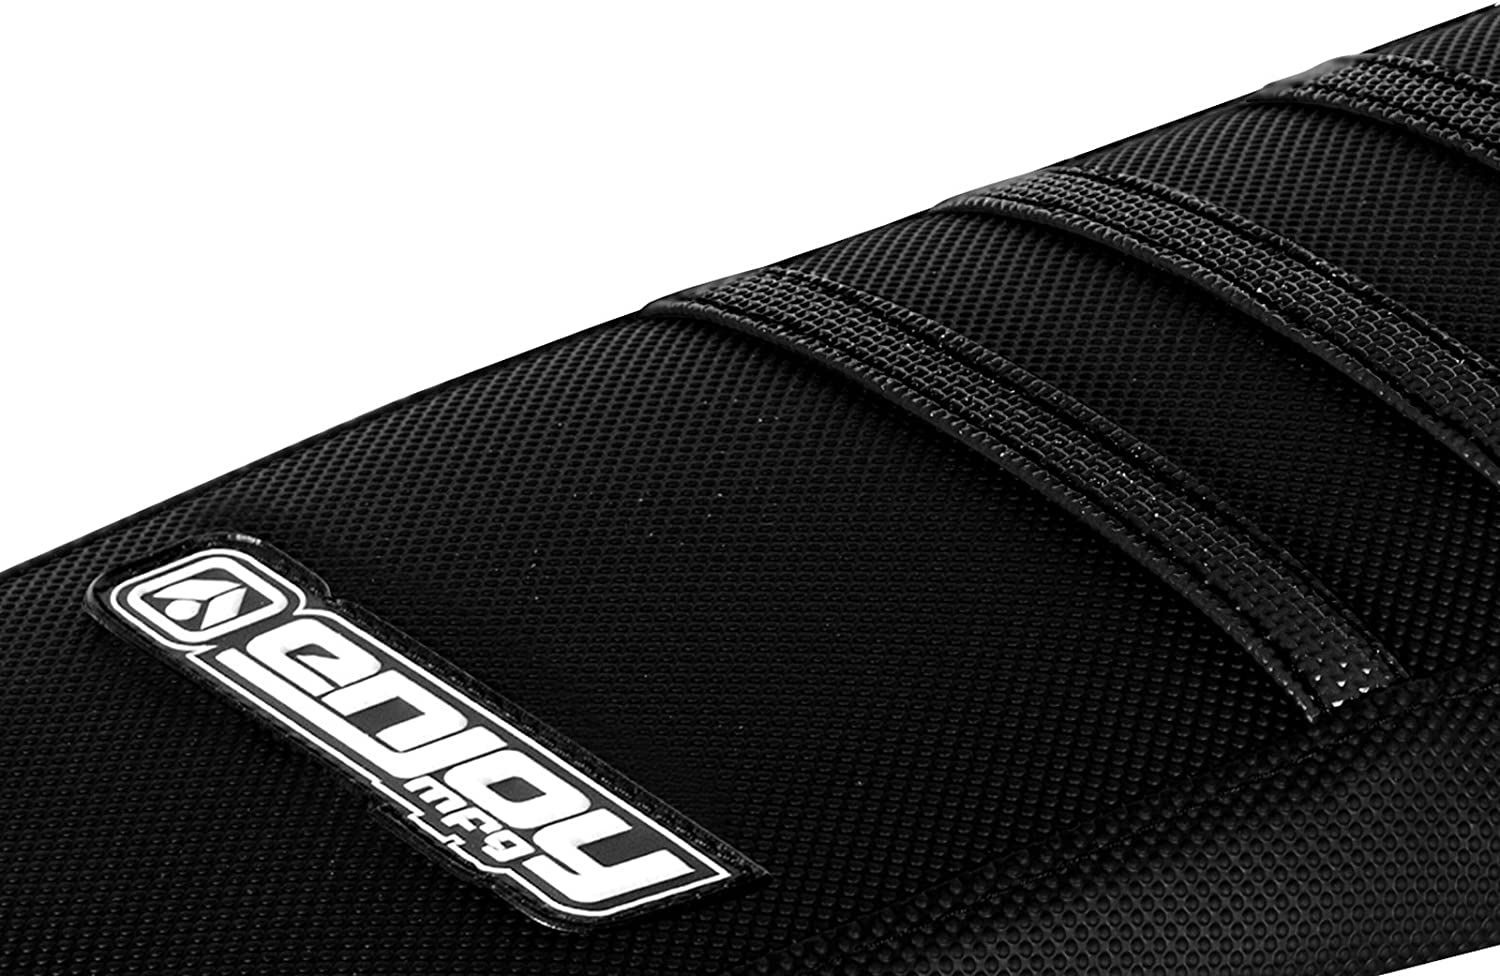 White Ribs Enjoy MFG Ribbed Seat Cover for 2000-2007 Yamaha TTR 125 All Black